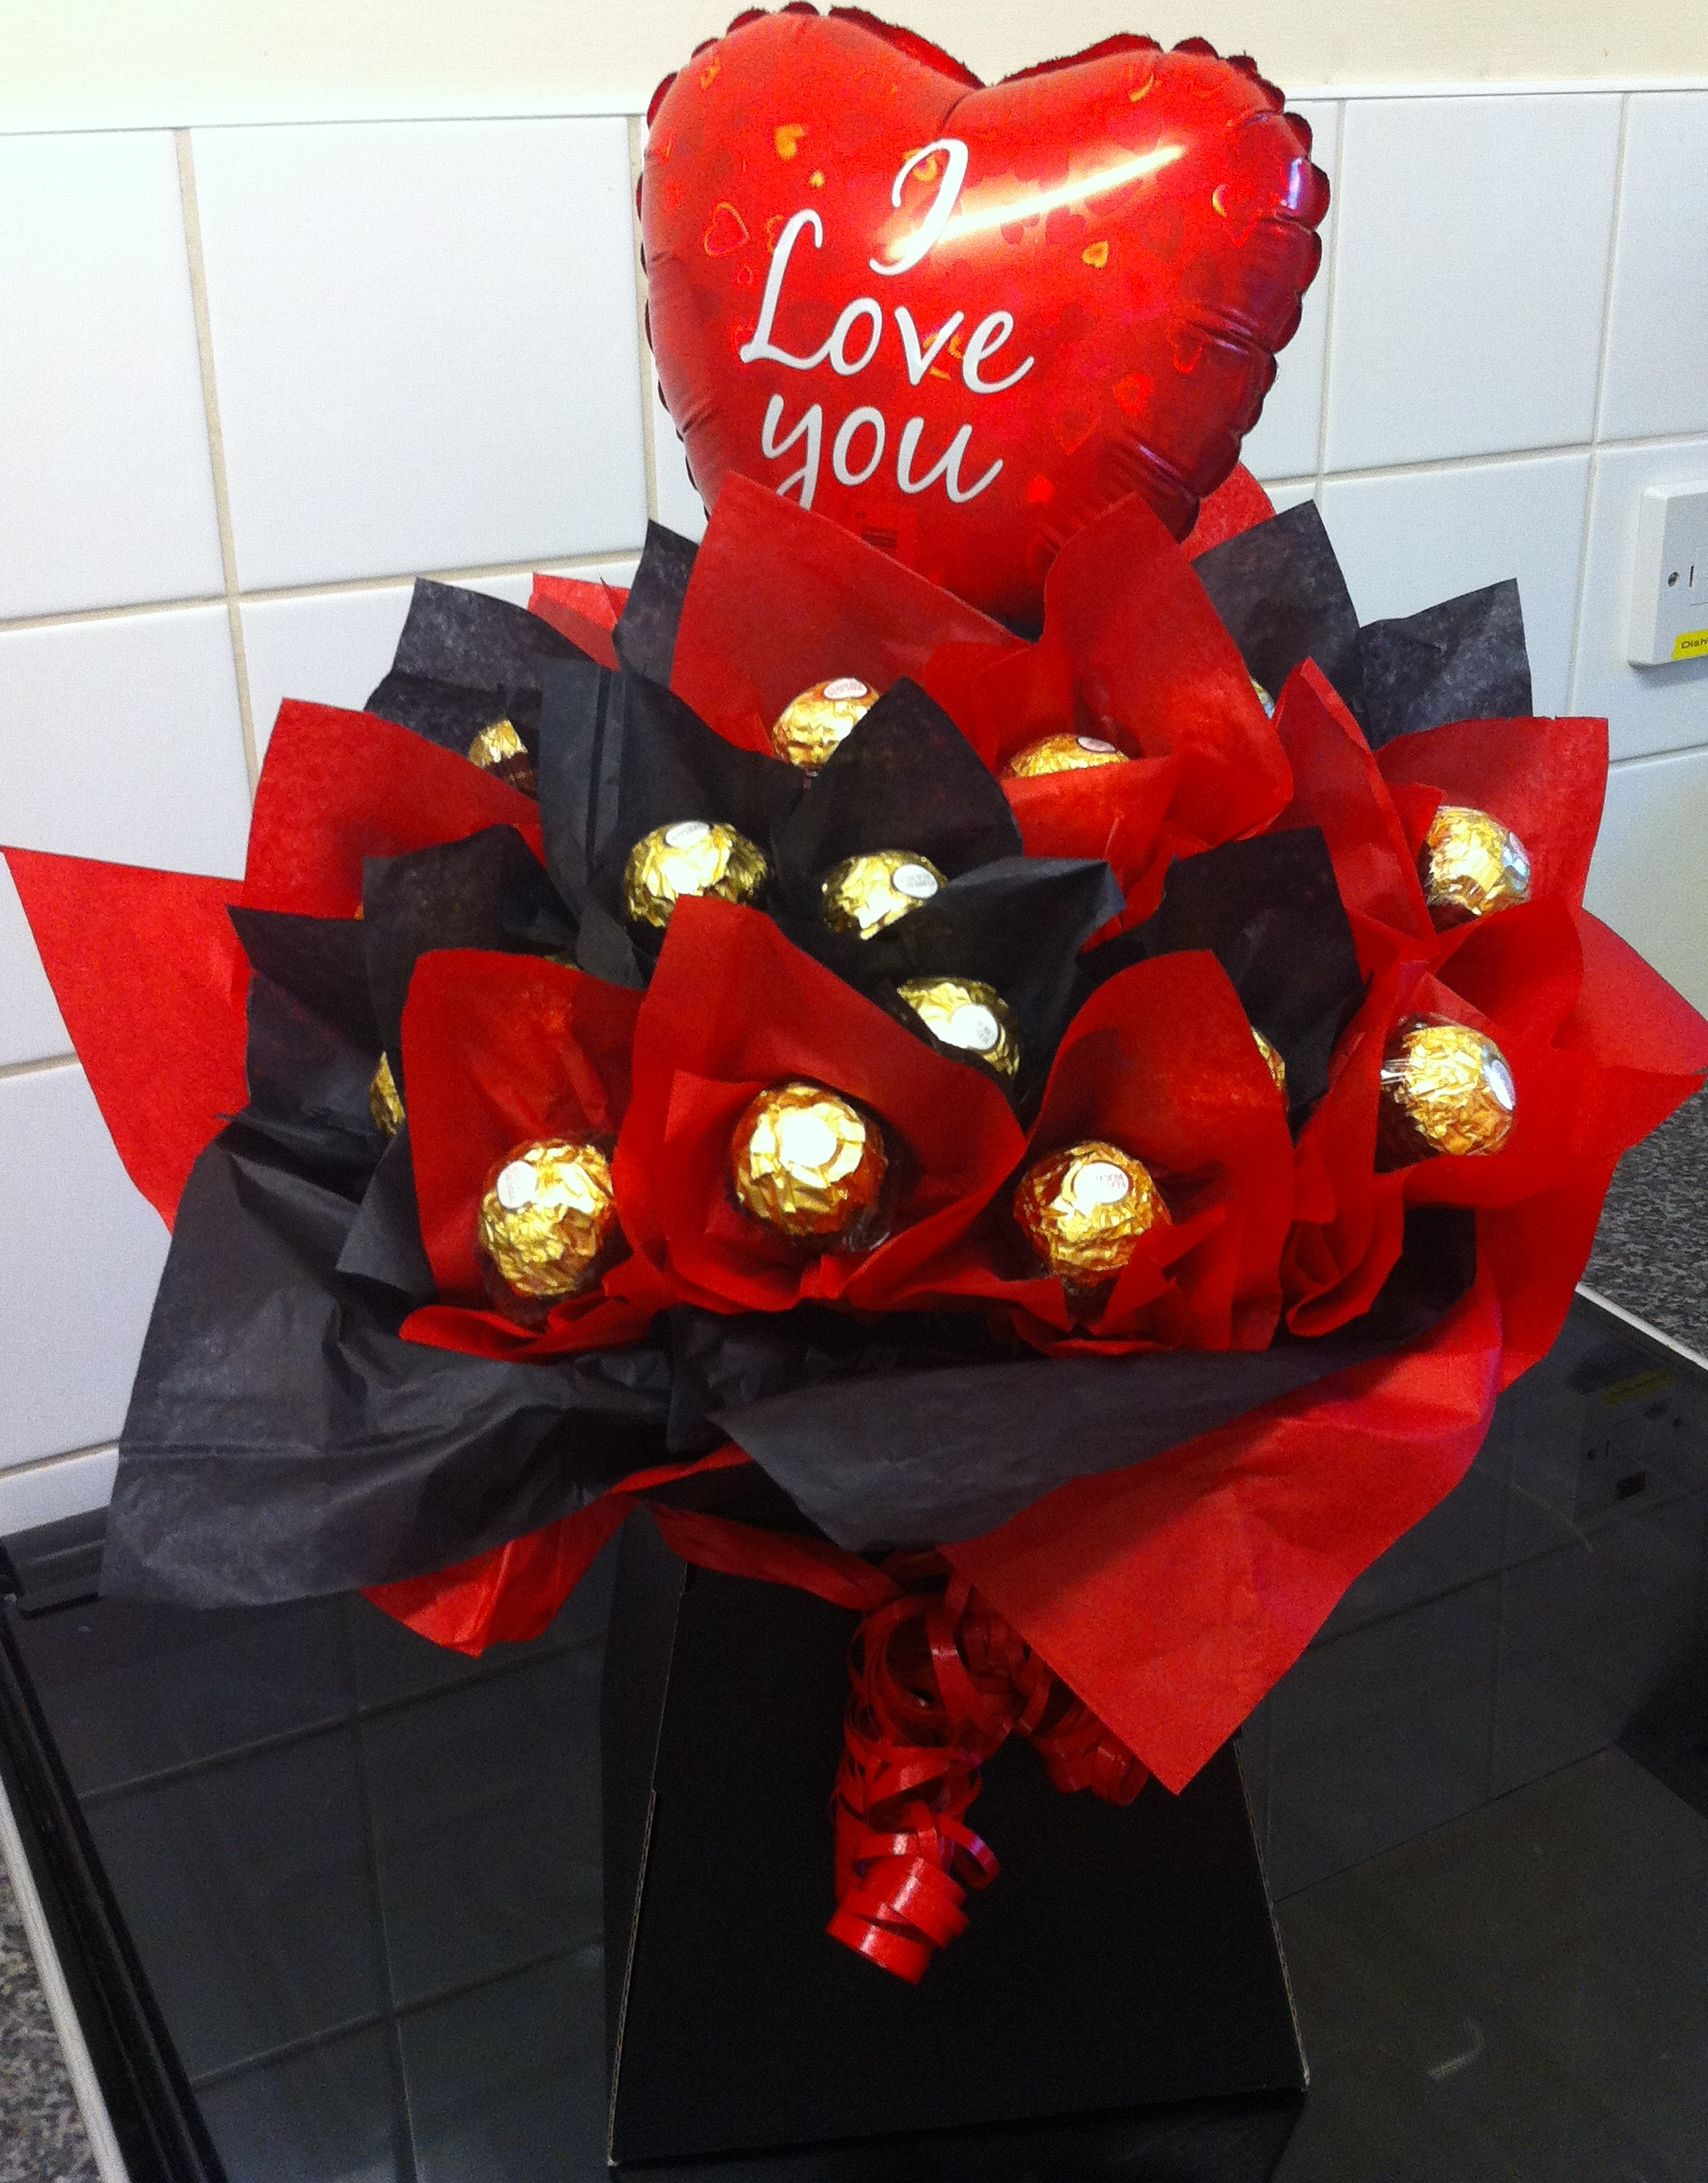 Valentines Bouquet - 2 dozen Ferrero Rocher displayed in a Black Box and in the colours of Black and Red - also with an 'I Love You' balloon